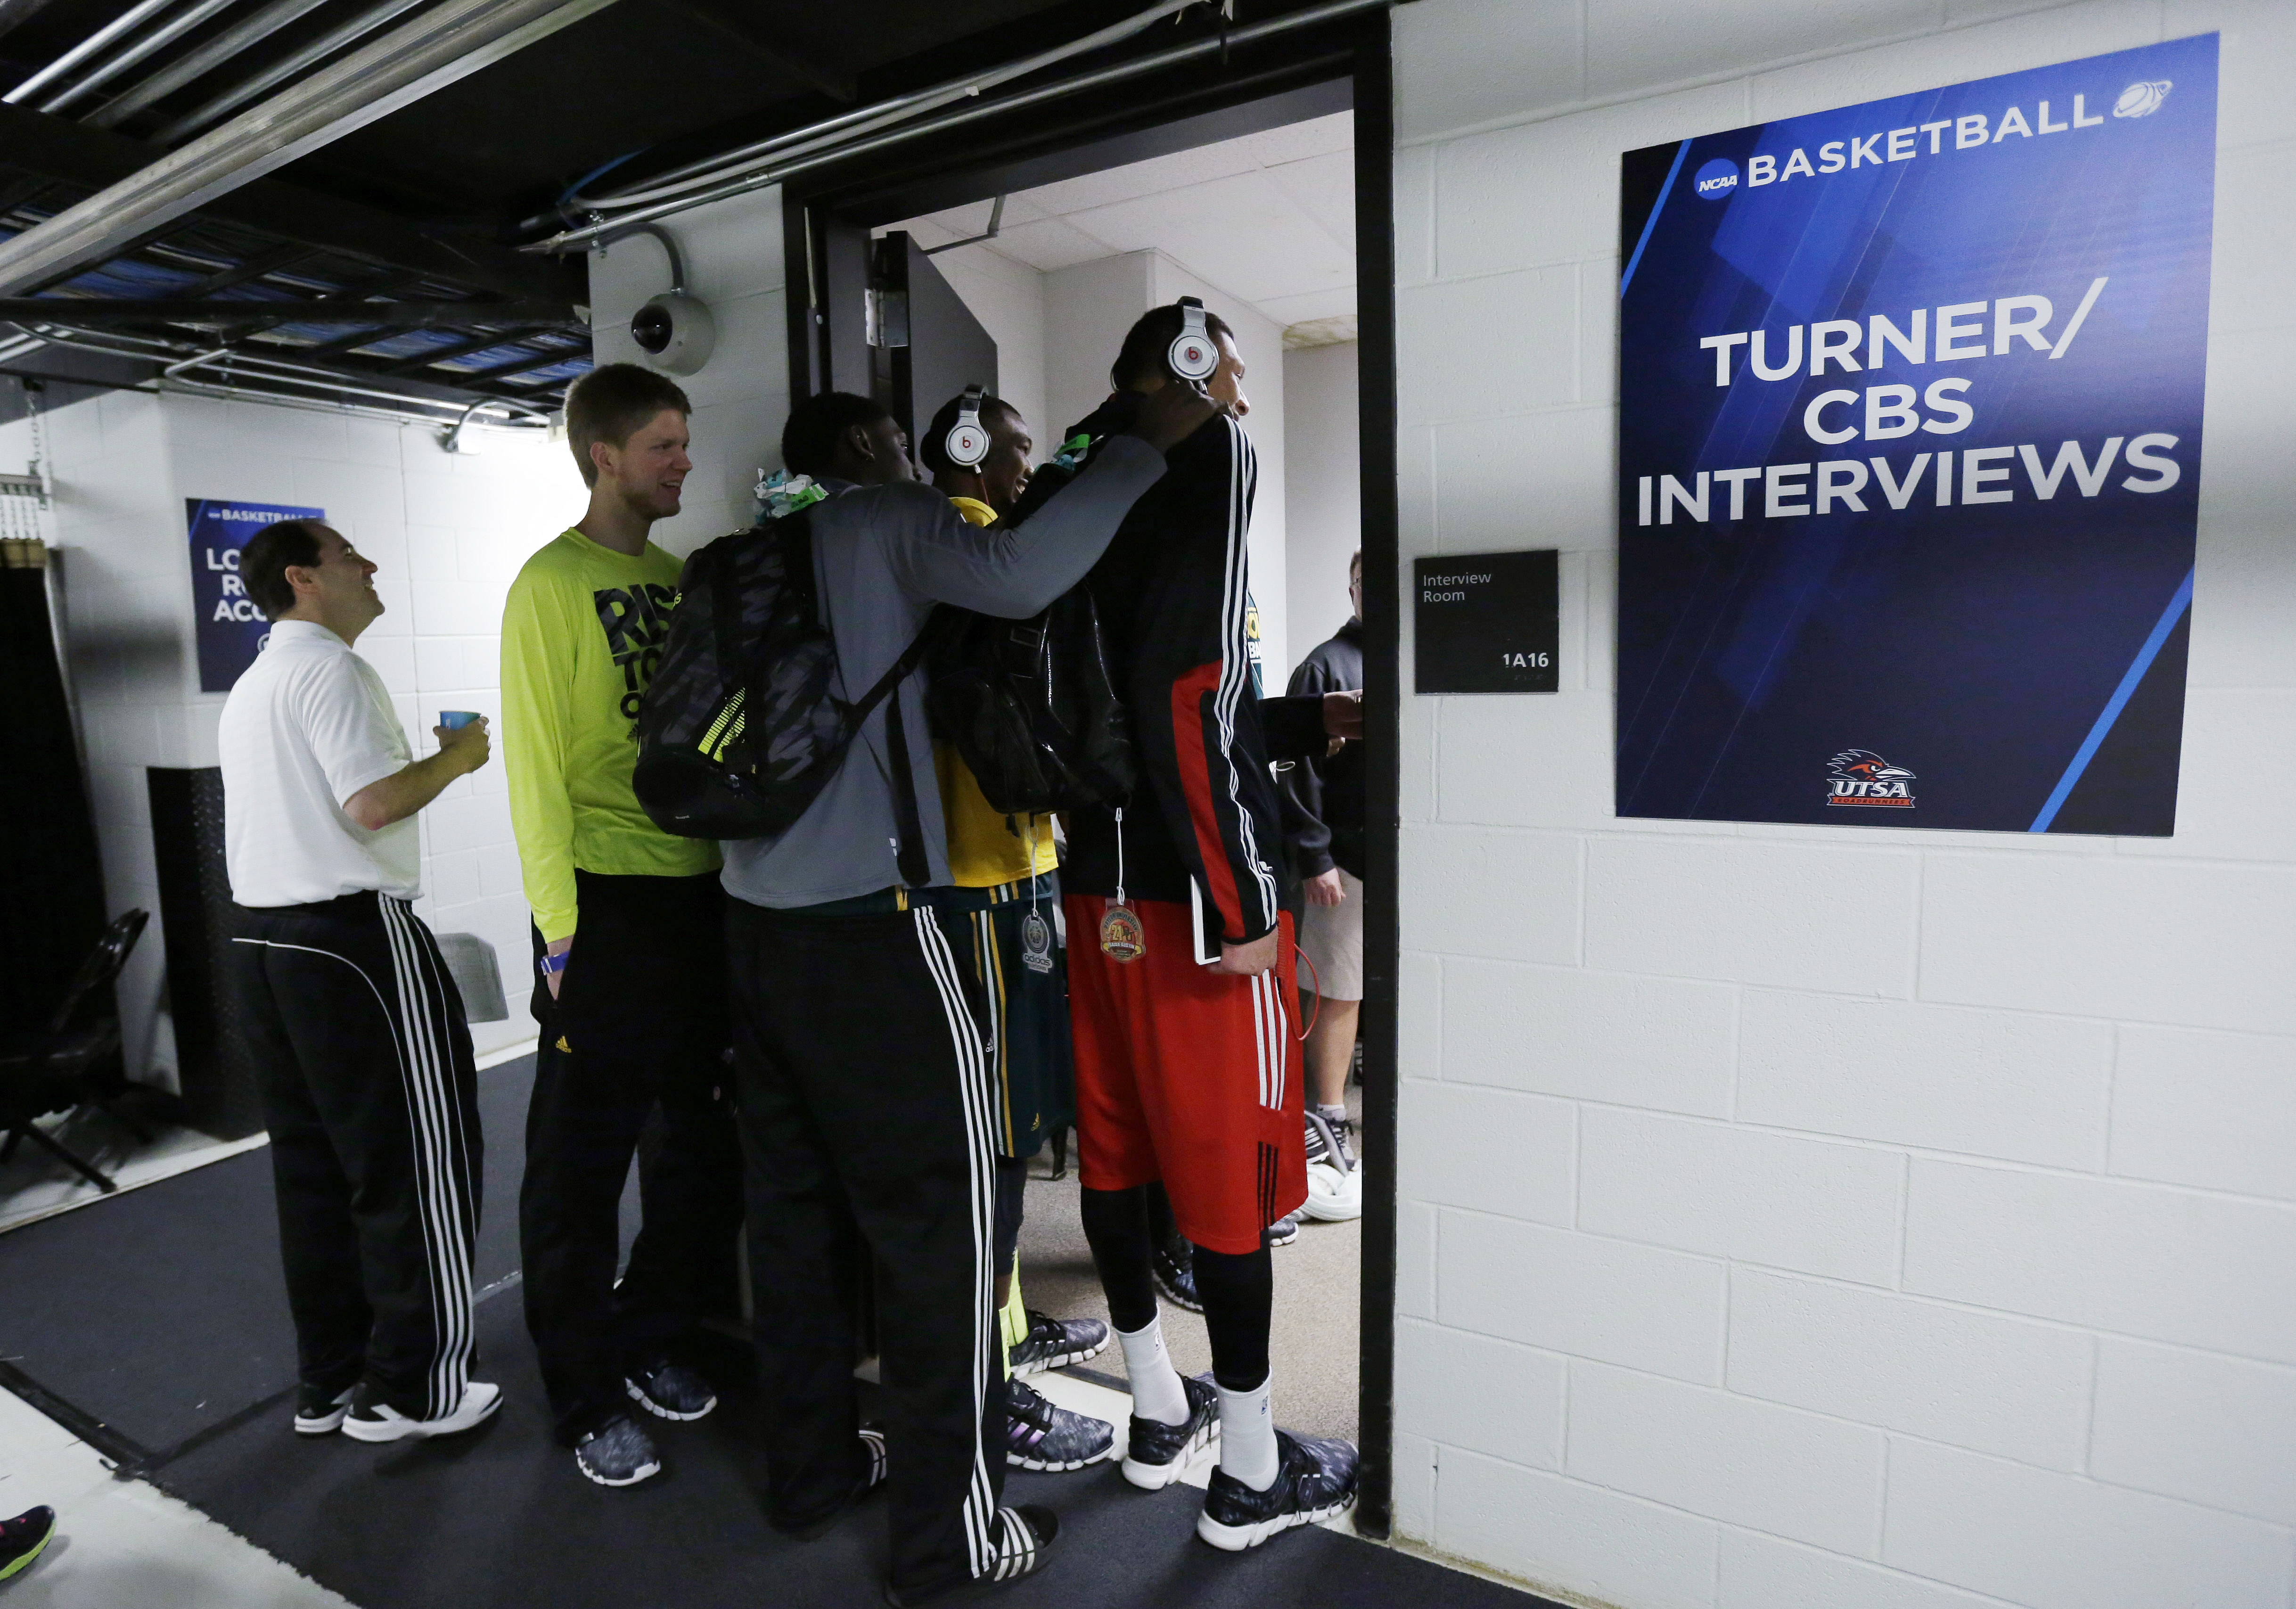 Baylor coach Scott Drew, left, and members of the team including Isaiah Austin, right, peak in on the CBS crew following a news conference at the NCAA college basketball tournament, Saturday, March 22, 2014, in San Antonio.